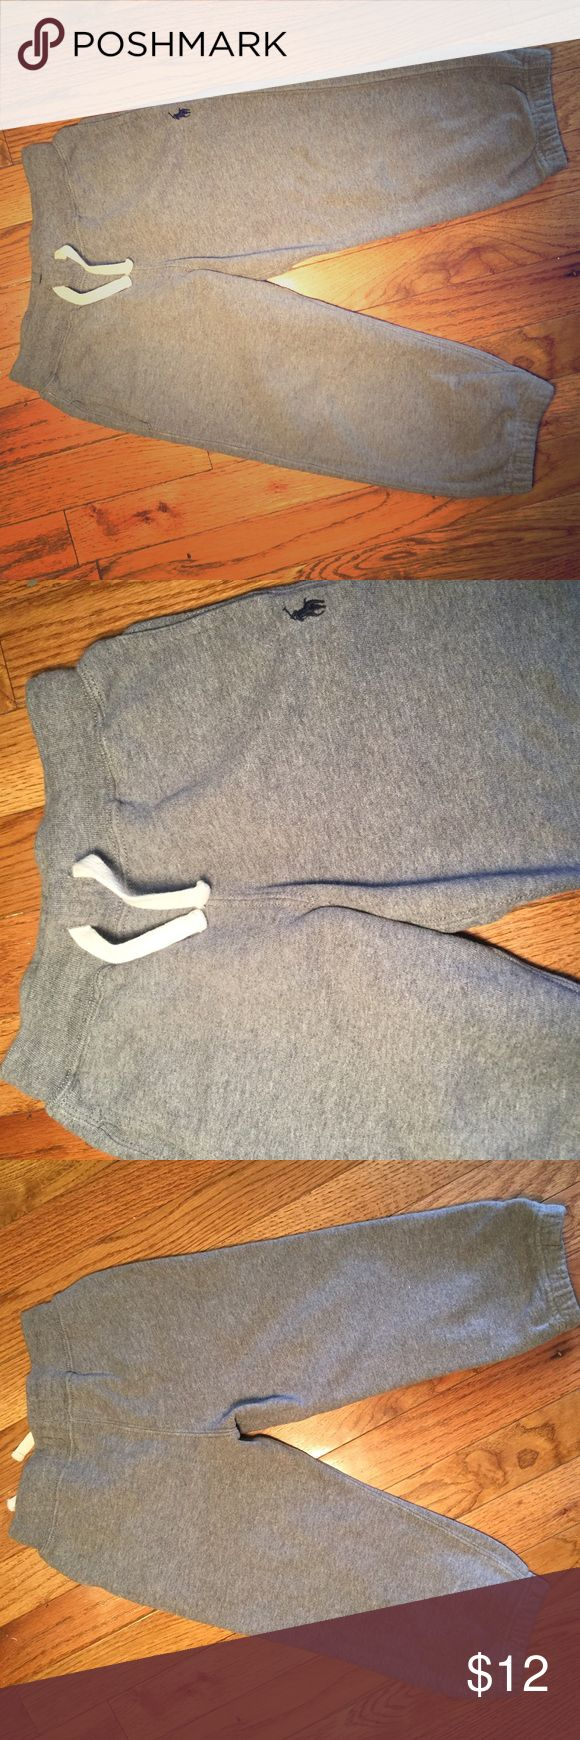 Polo Sweatpants Toddler Grey Sweatpants for toddler 3t. In like-new condition without stains or rips. Let's go! Dig In The FlowerPot ‼️!! Polo by Ralph Lauren Bottoms Sweatpants & Joggers